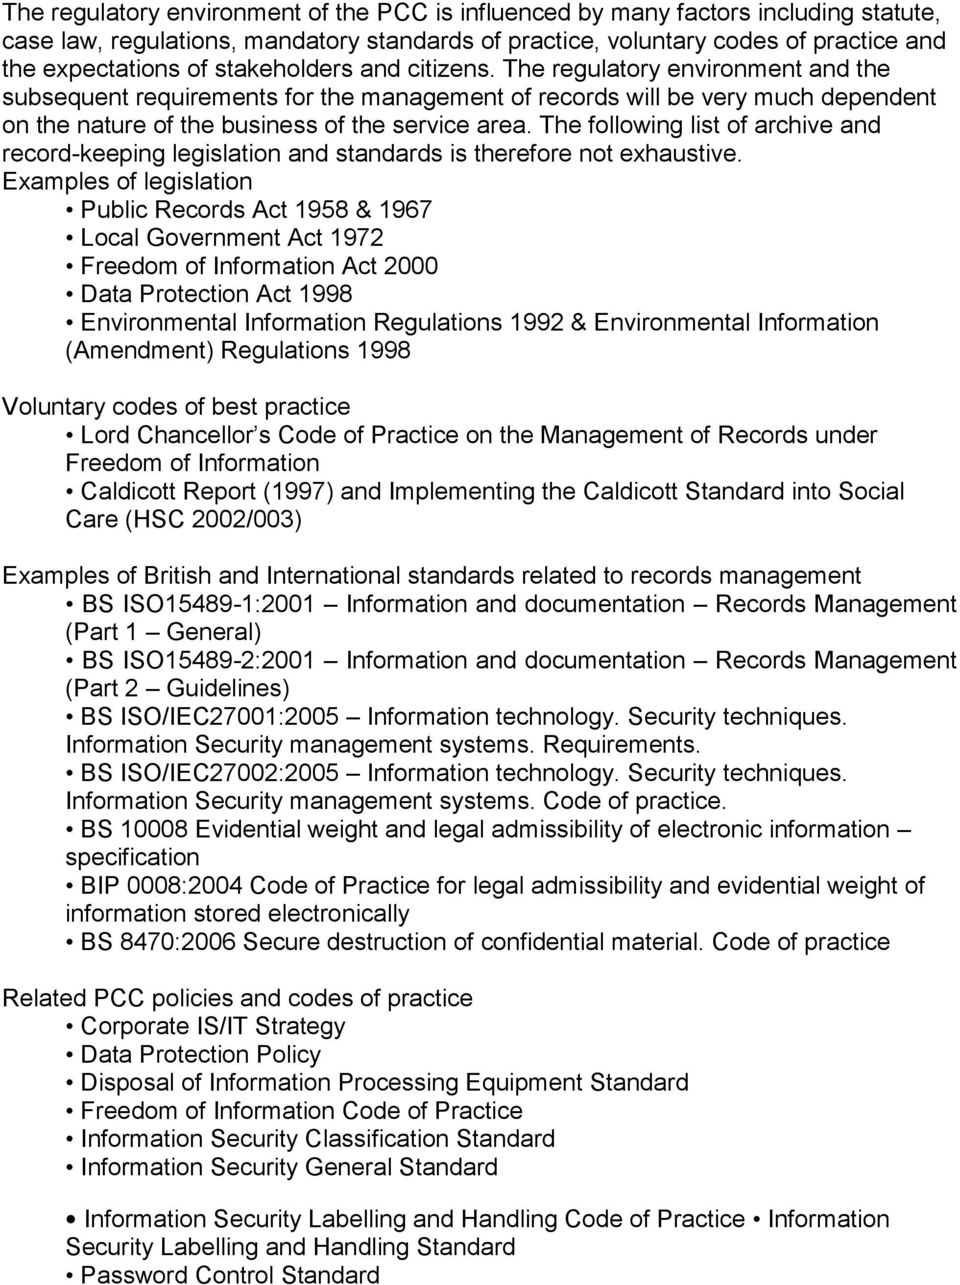 The following list of archive and record-keeping legislation and standards is therefore not exhaustive.